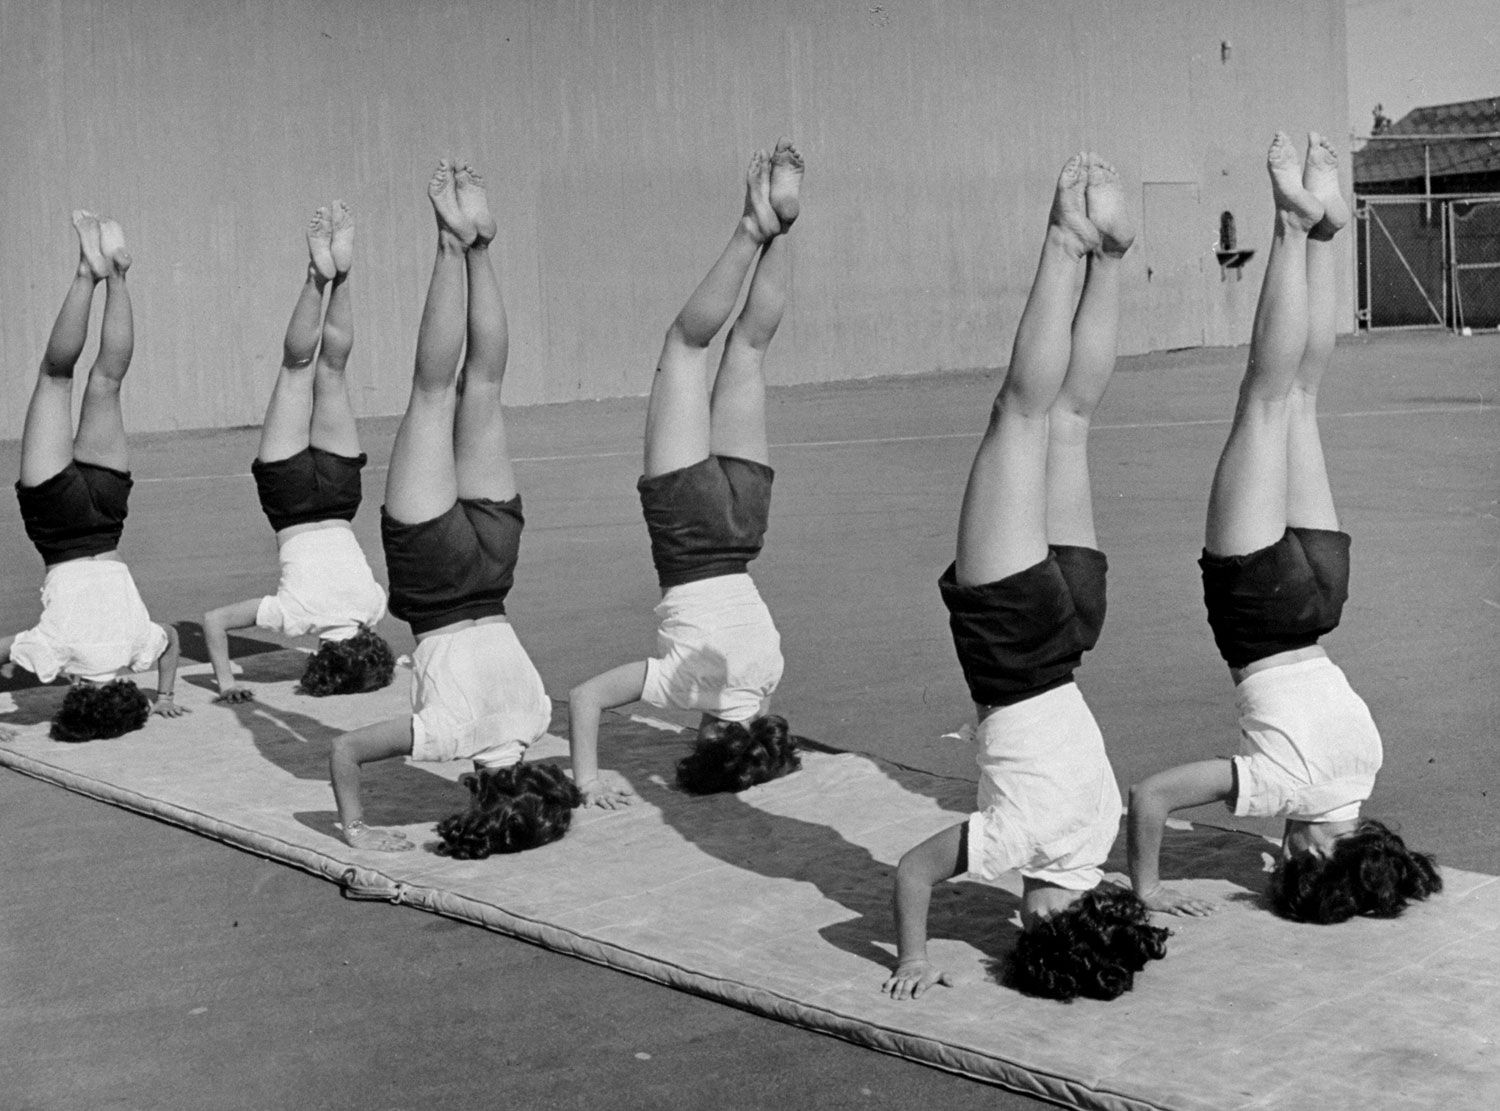 Girls From Hoover High School Stand On Their Heads In Gymnastics Class 2c San Diego 2c California 2c 1946 Jpg Hoover High School Yoga Photos Gymnastics Class